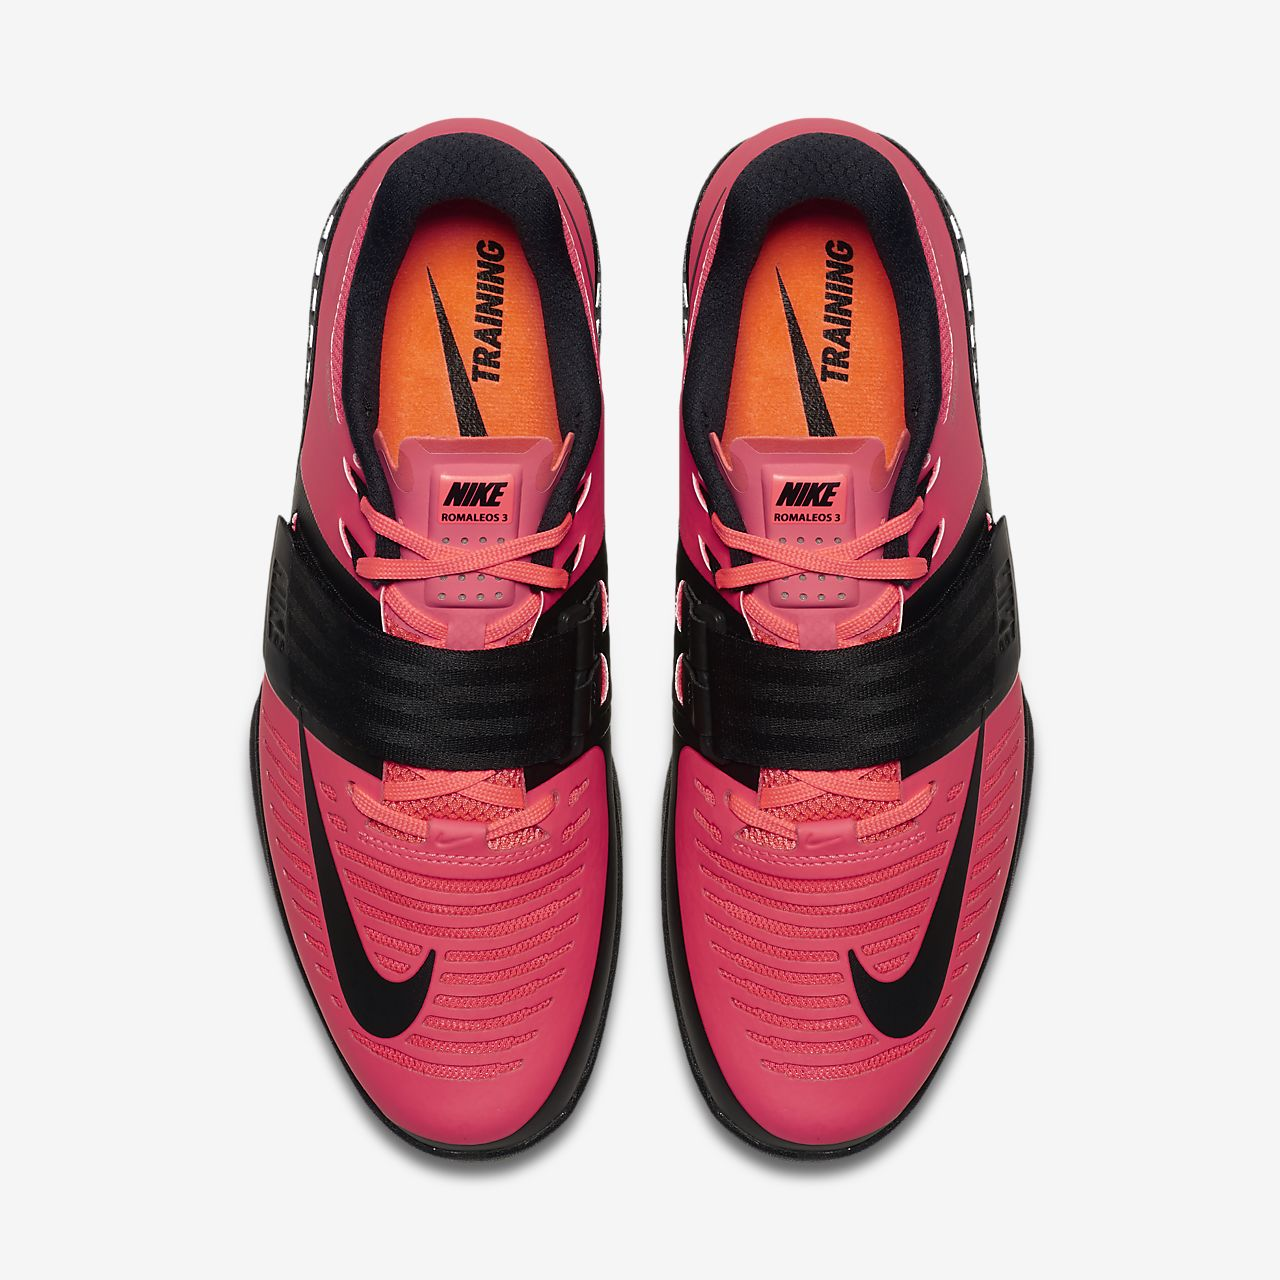 new product 769d2 e46a6 nike romaleos 3 france